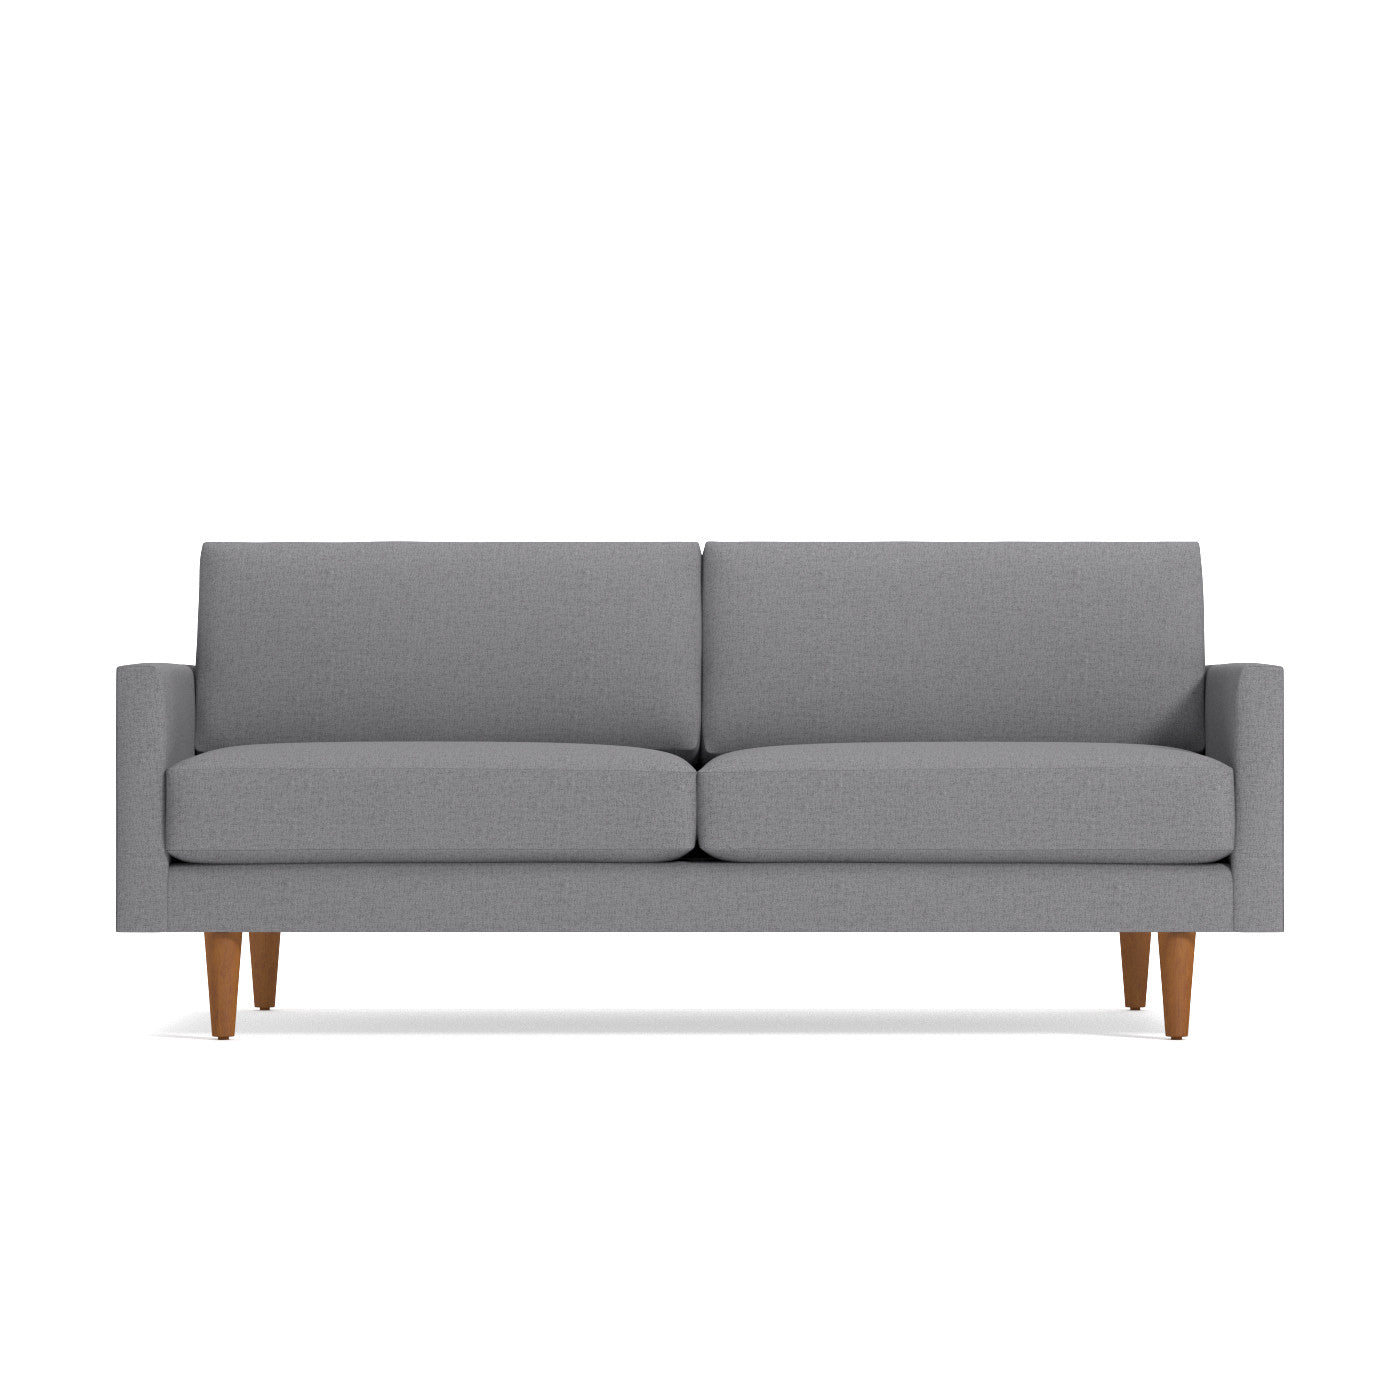 Scott Sofa from Kyle Schuneman CHOICE OF FABRICS